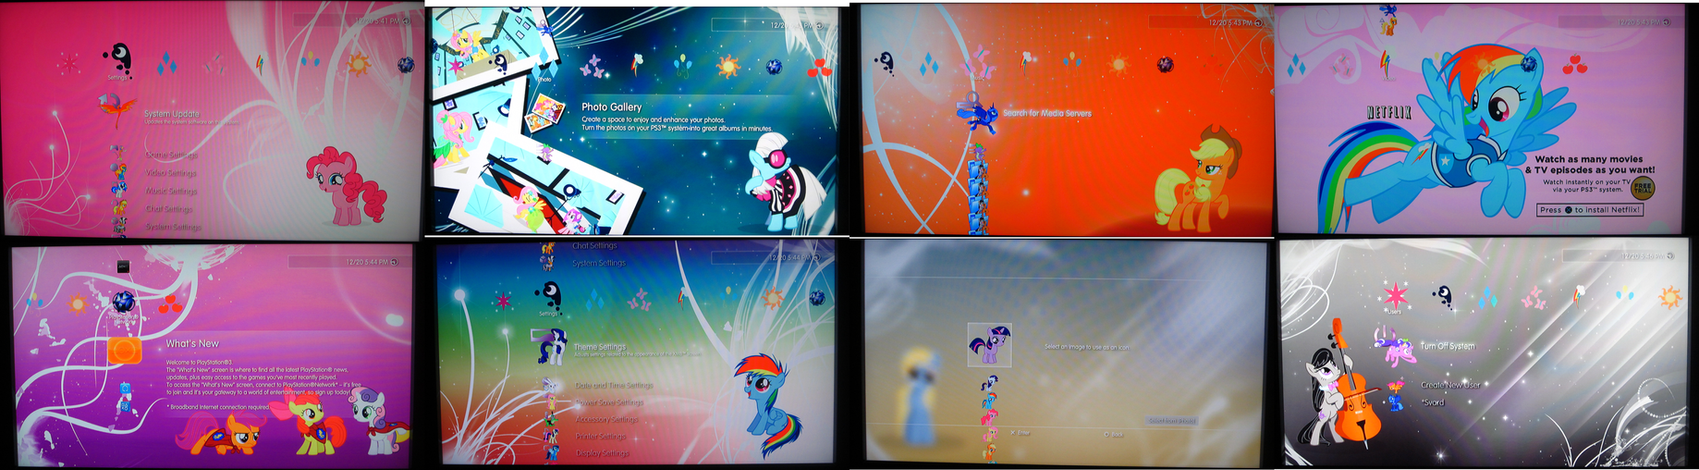 Friendship is Magic PS3 Themes by Unfiltered-N